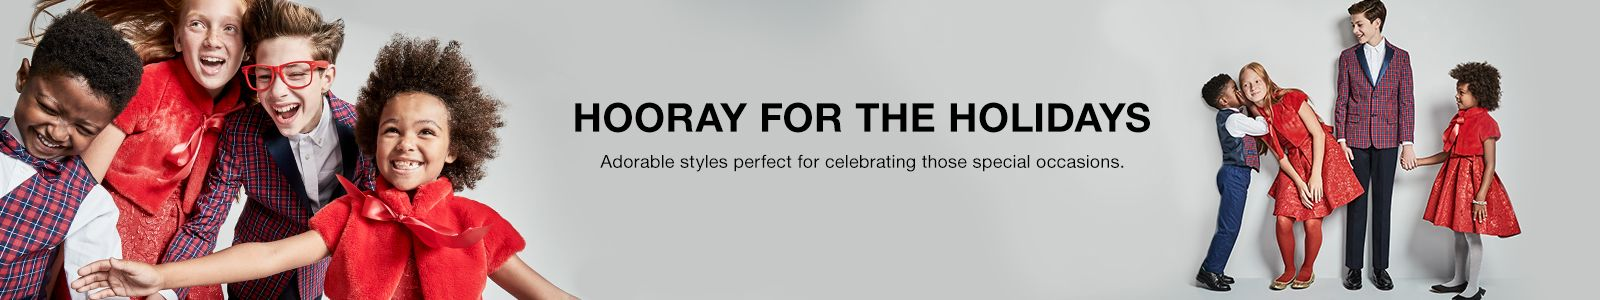 Hooray For The Holidays, Adorable styles perfect for celebrating those special